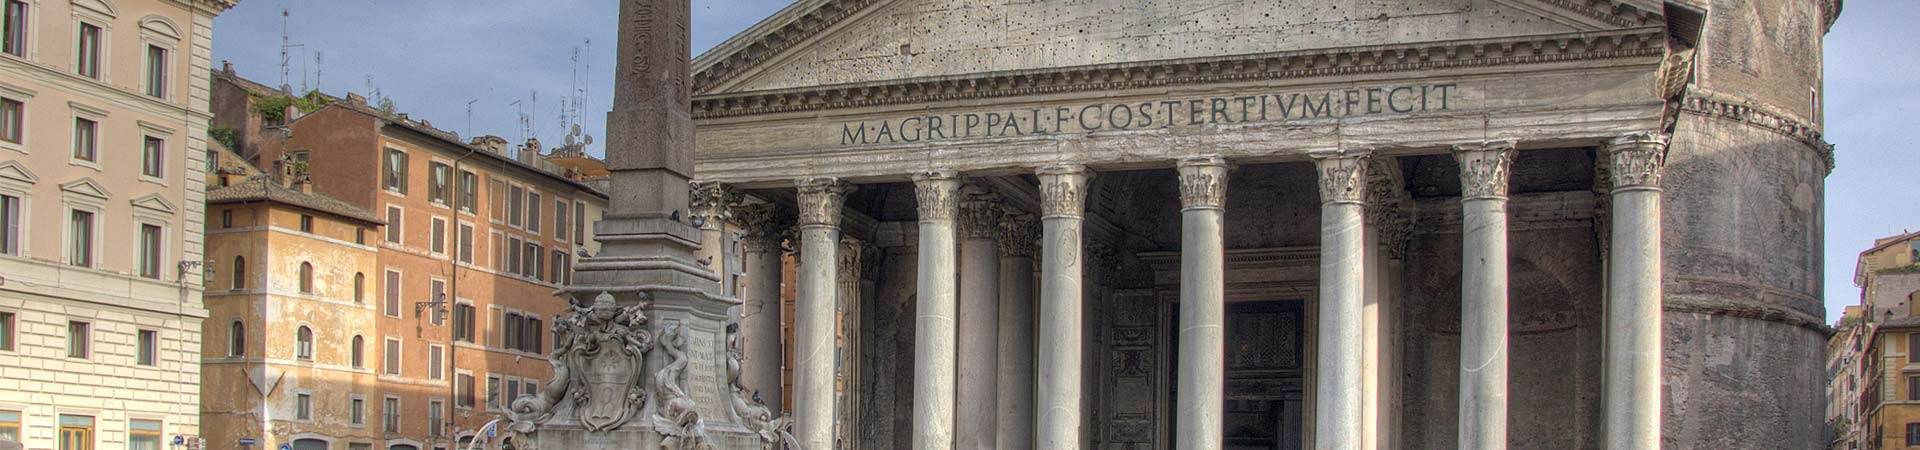 pantheon, must see rome tour